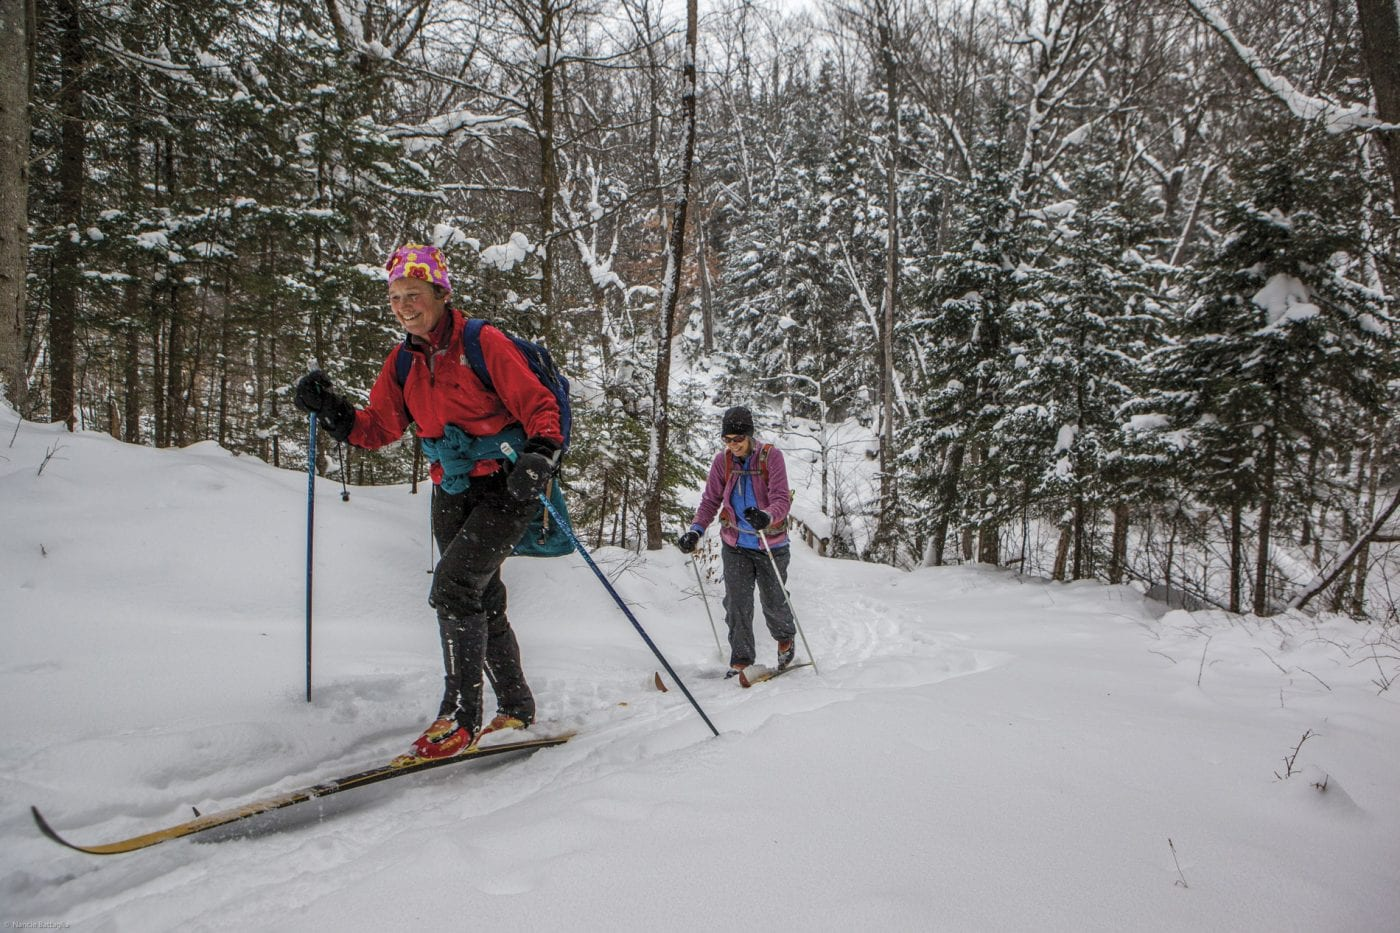 Cascade Ski Touring Center, near Lake Placid, is one of the many Cross-Country Ski Centers in the Adirondack Park.